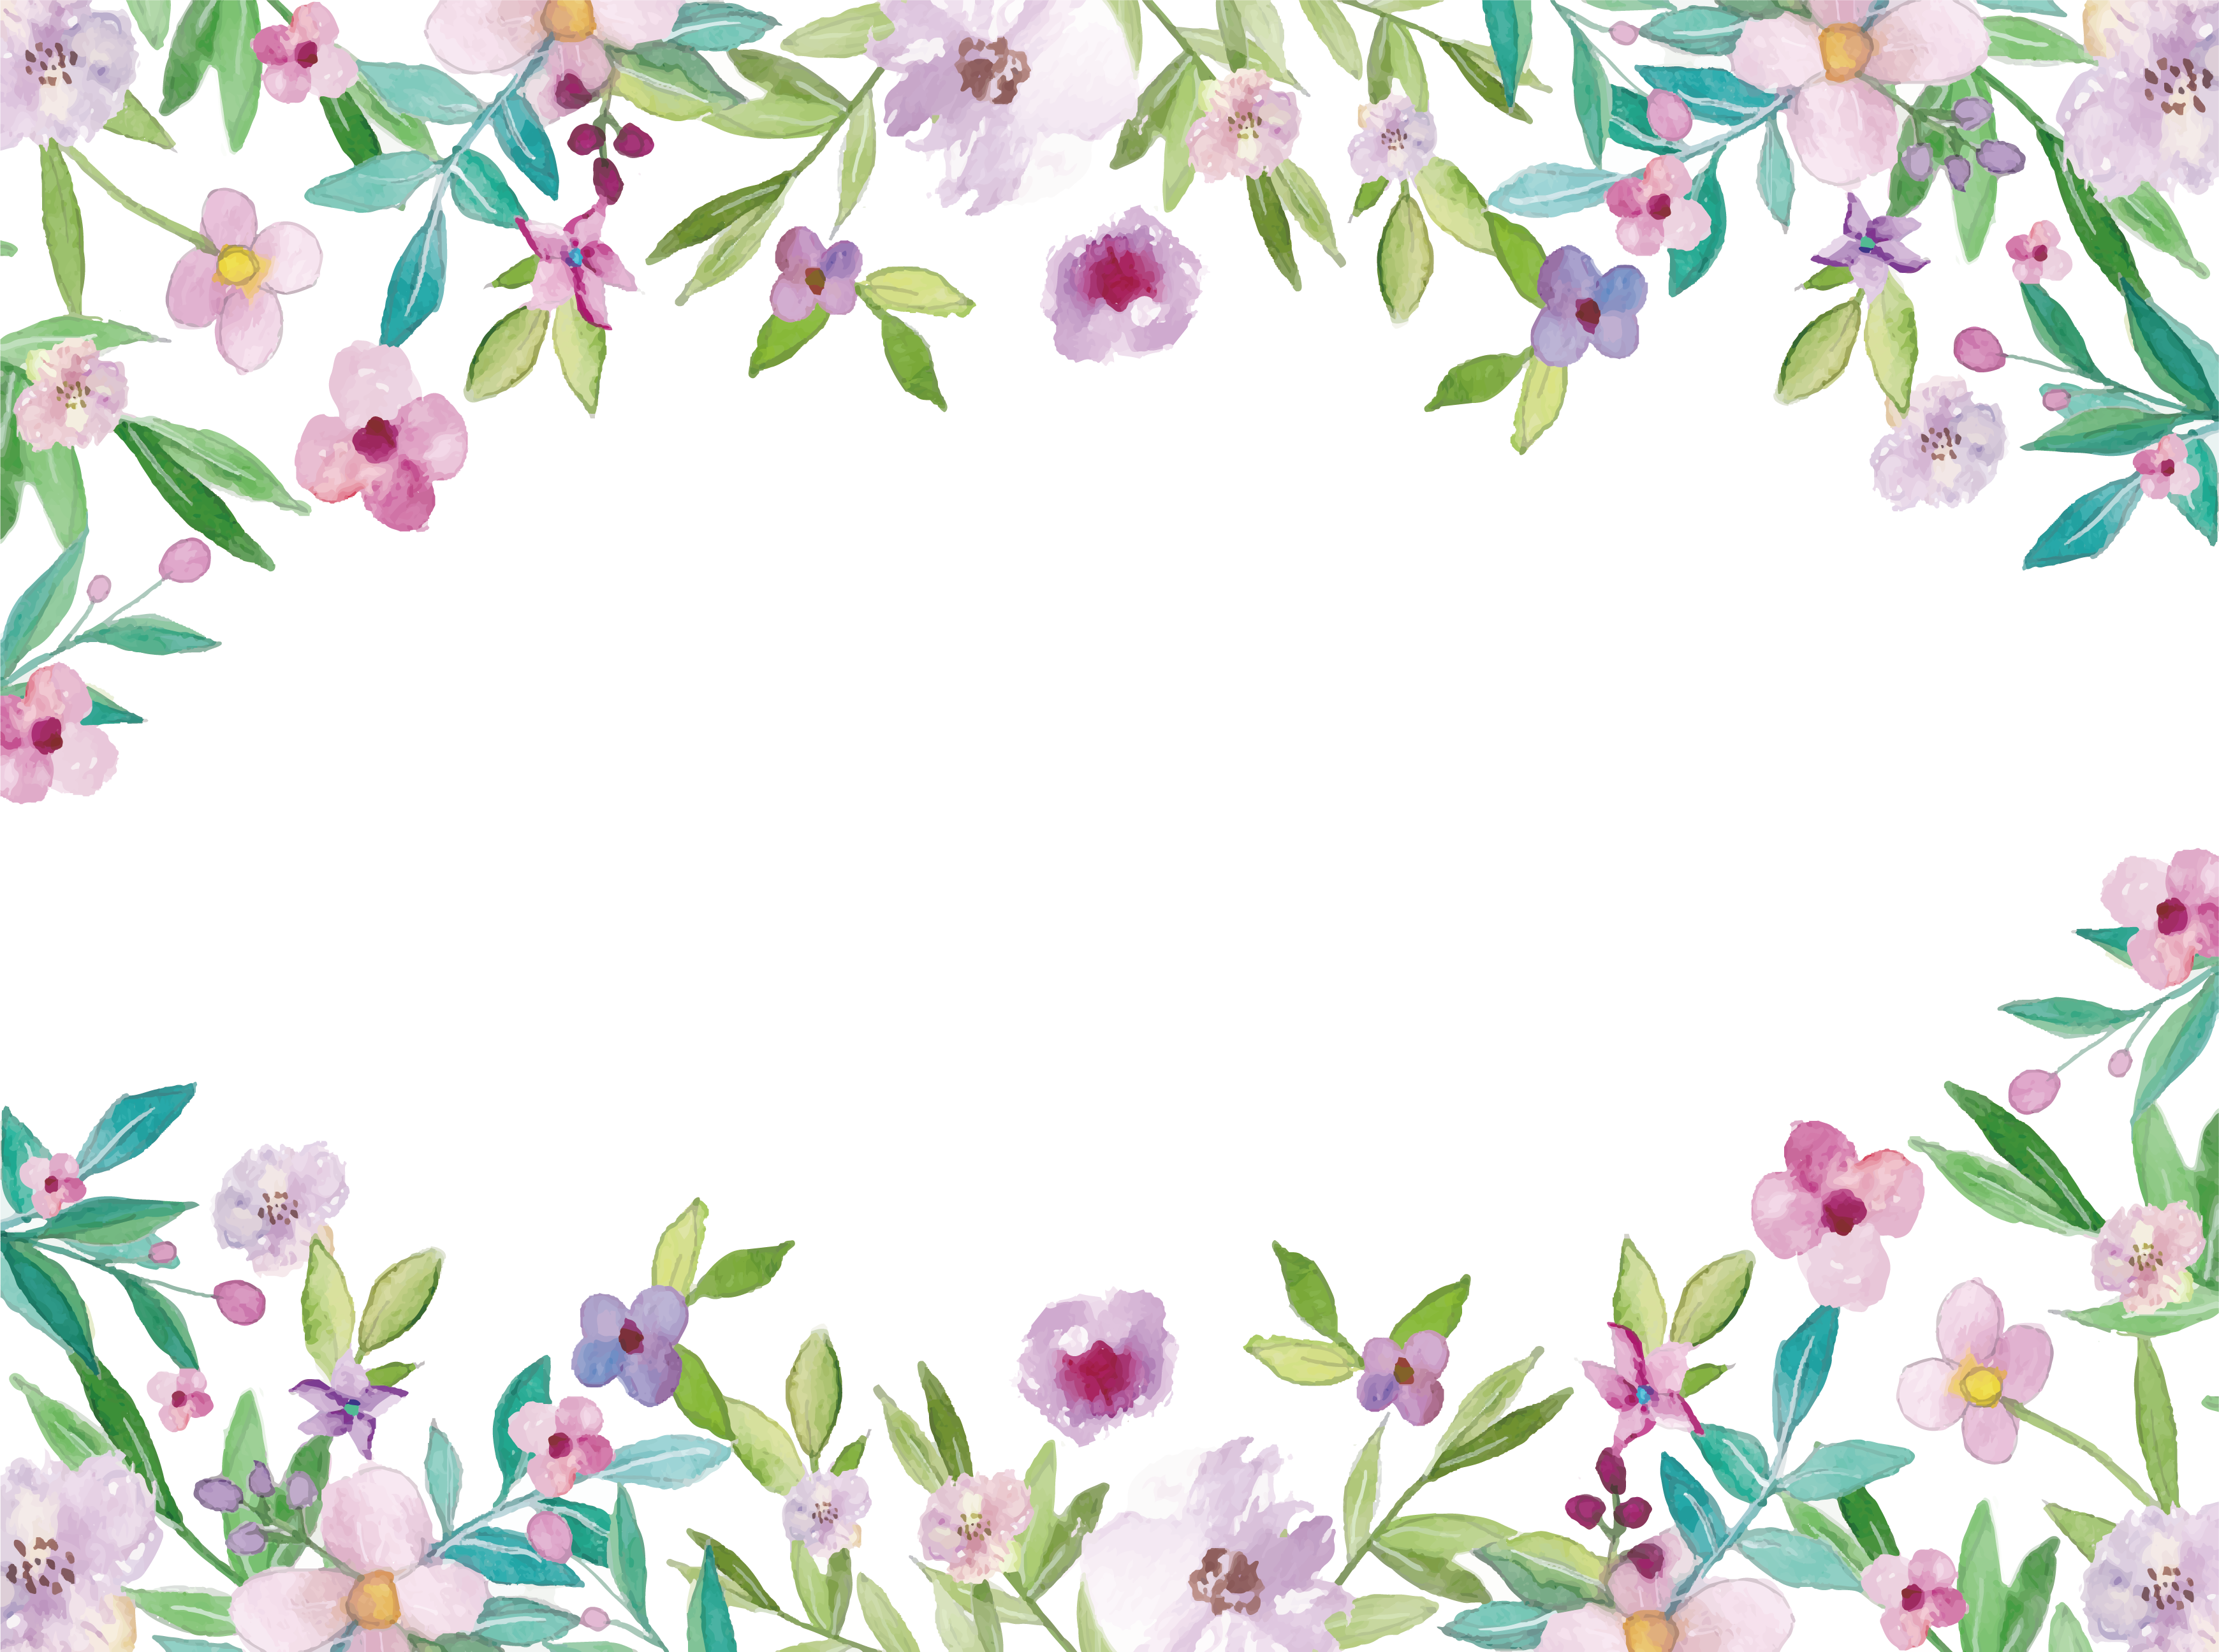 royalty free Border clipart watercolor. Painting clip art flowers